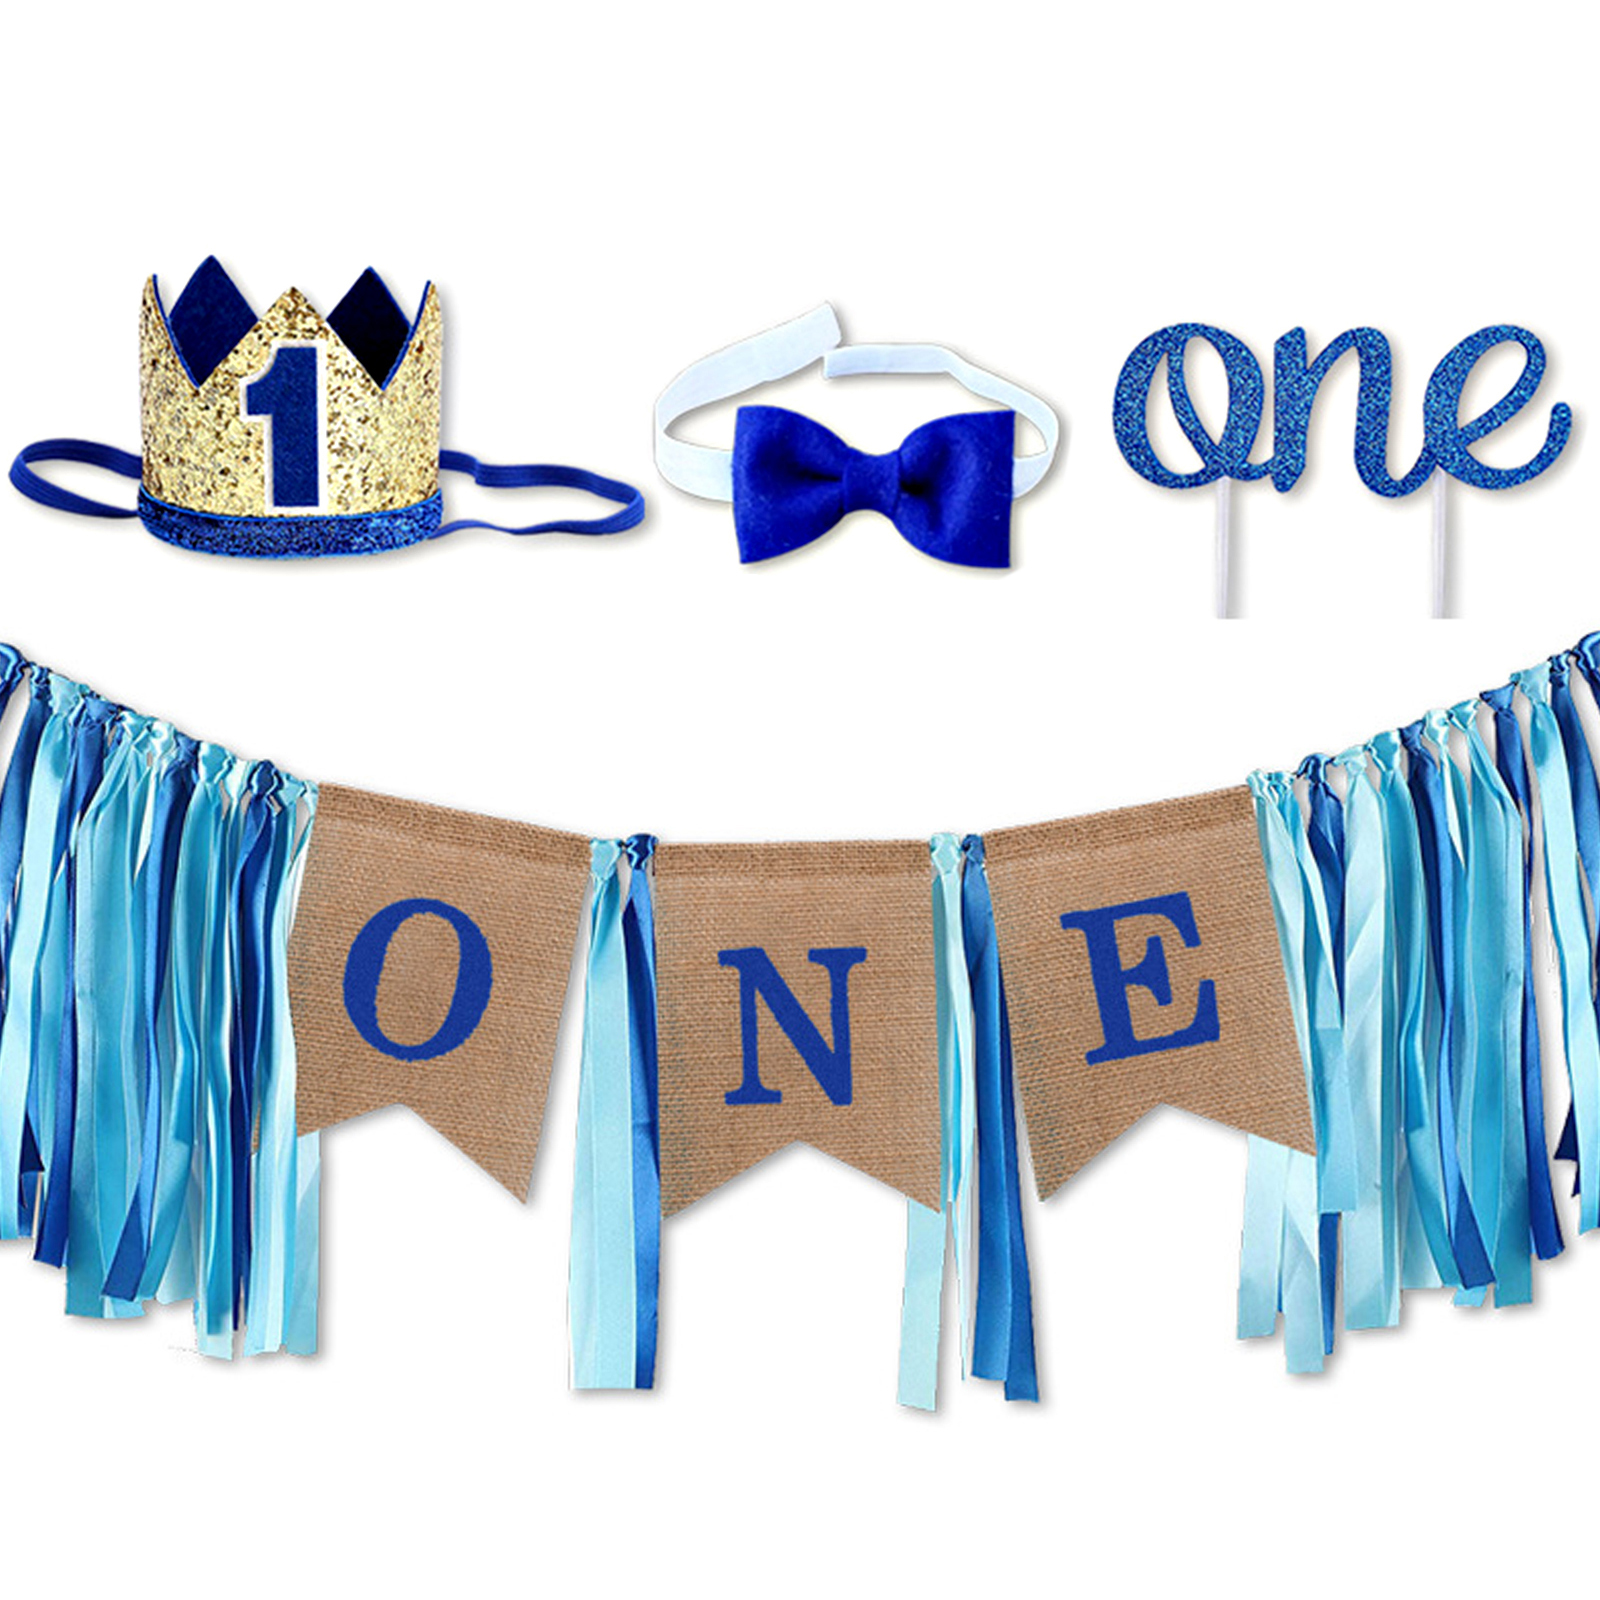 NEW Baby Shower  Blue Pink Photo Frame Crown Hat Banners Garlands For Kids Baby Boy Girl One Year Old 1st Birthday Party Decor